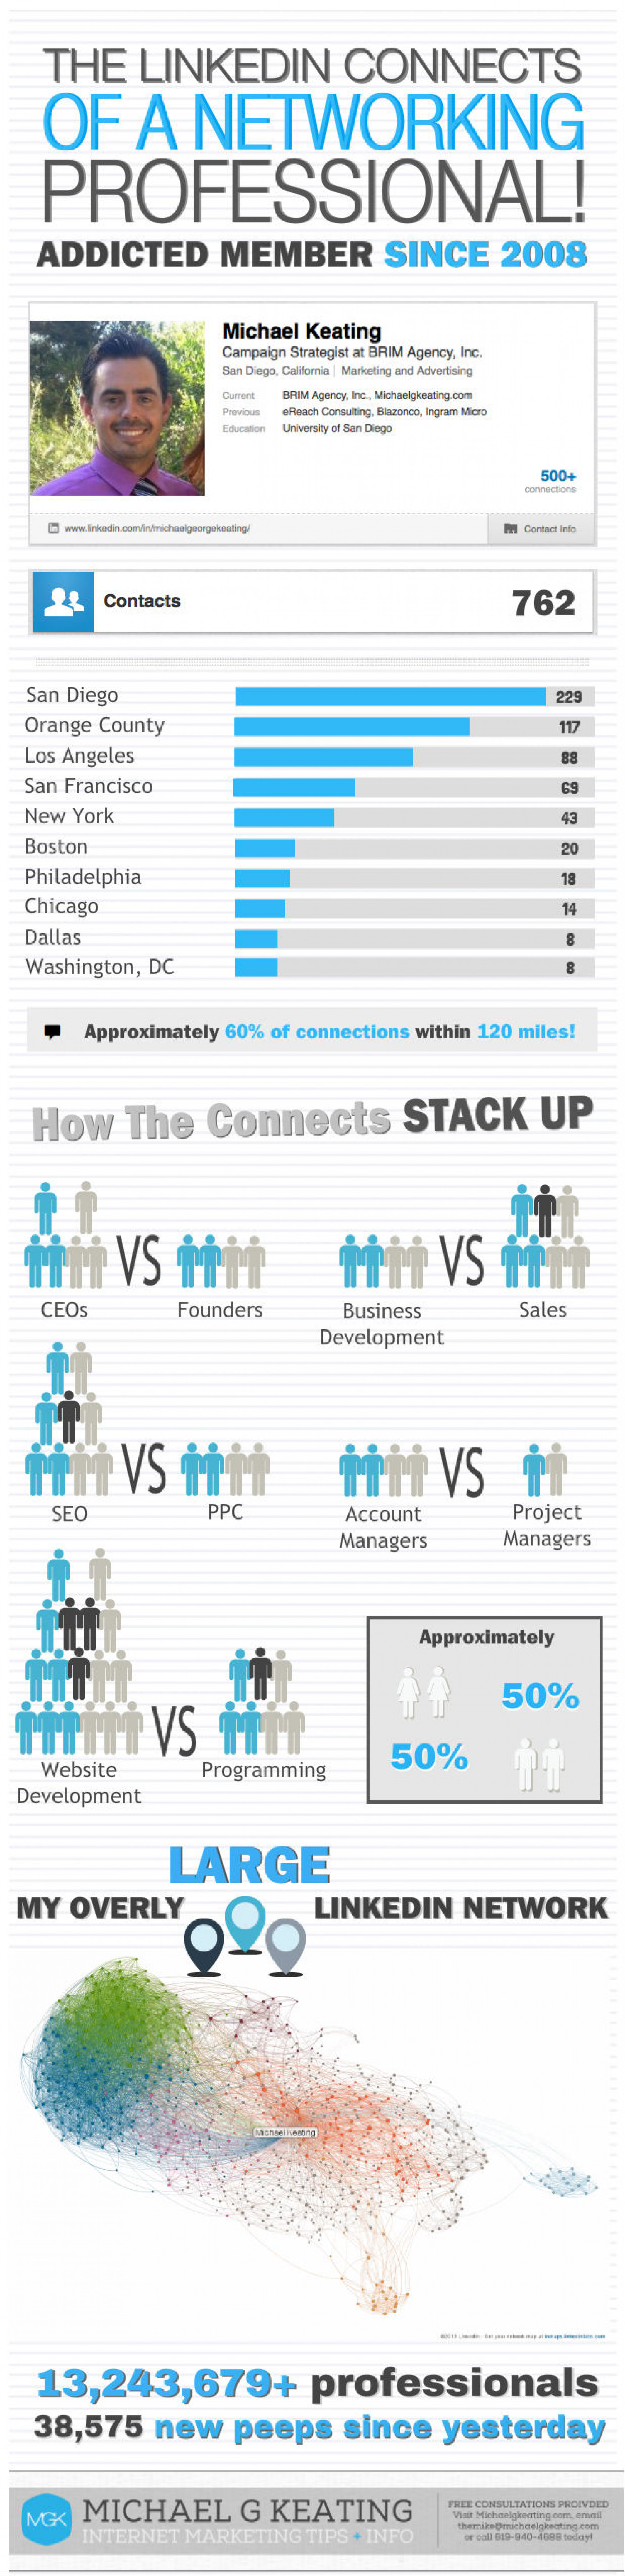 The Linkedin Profile of A Networking Addict  Infographic